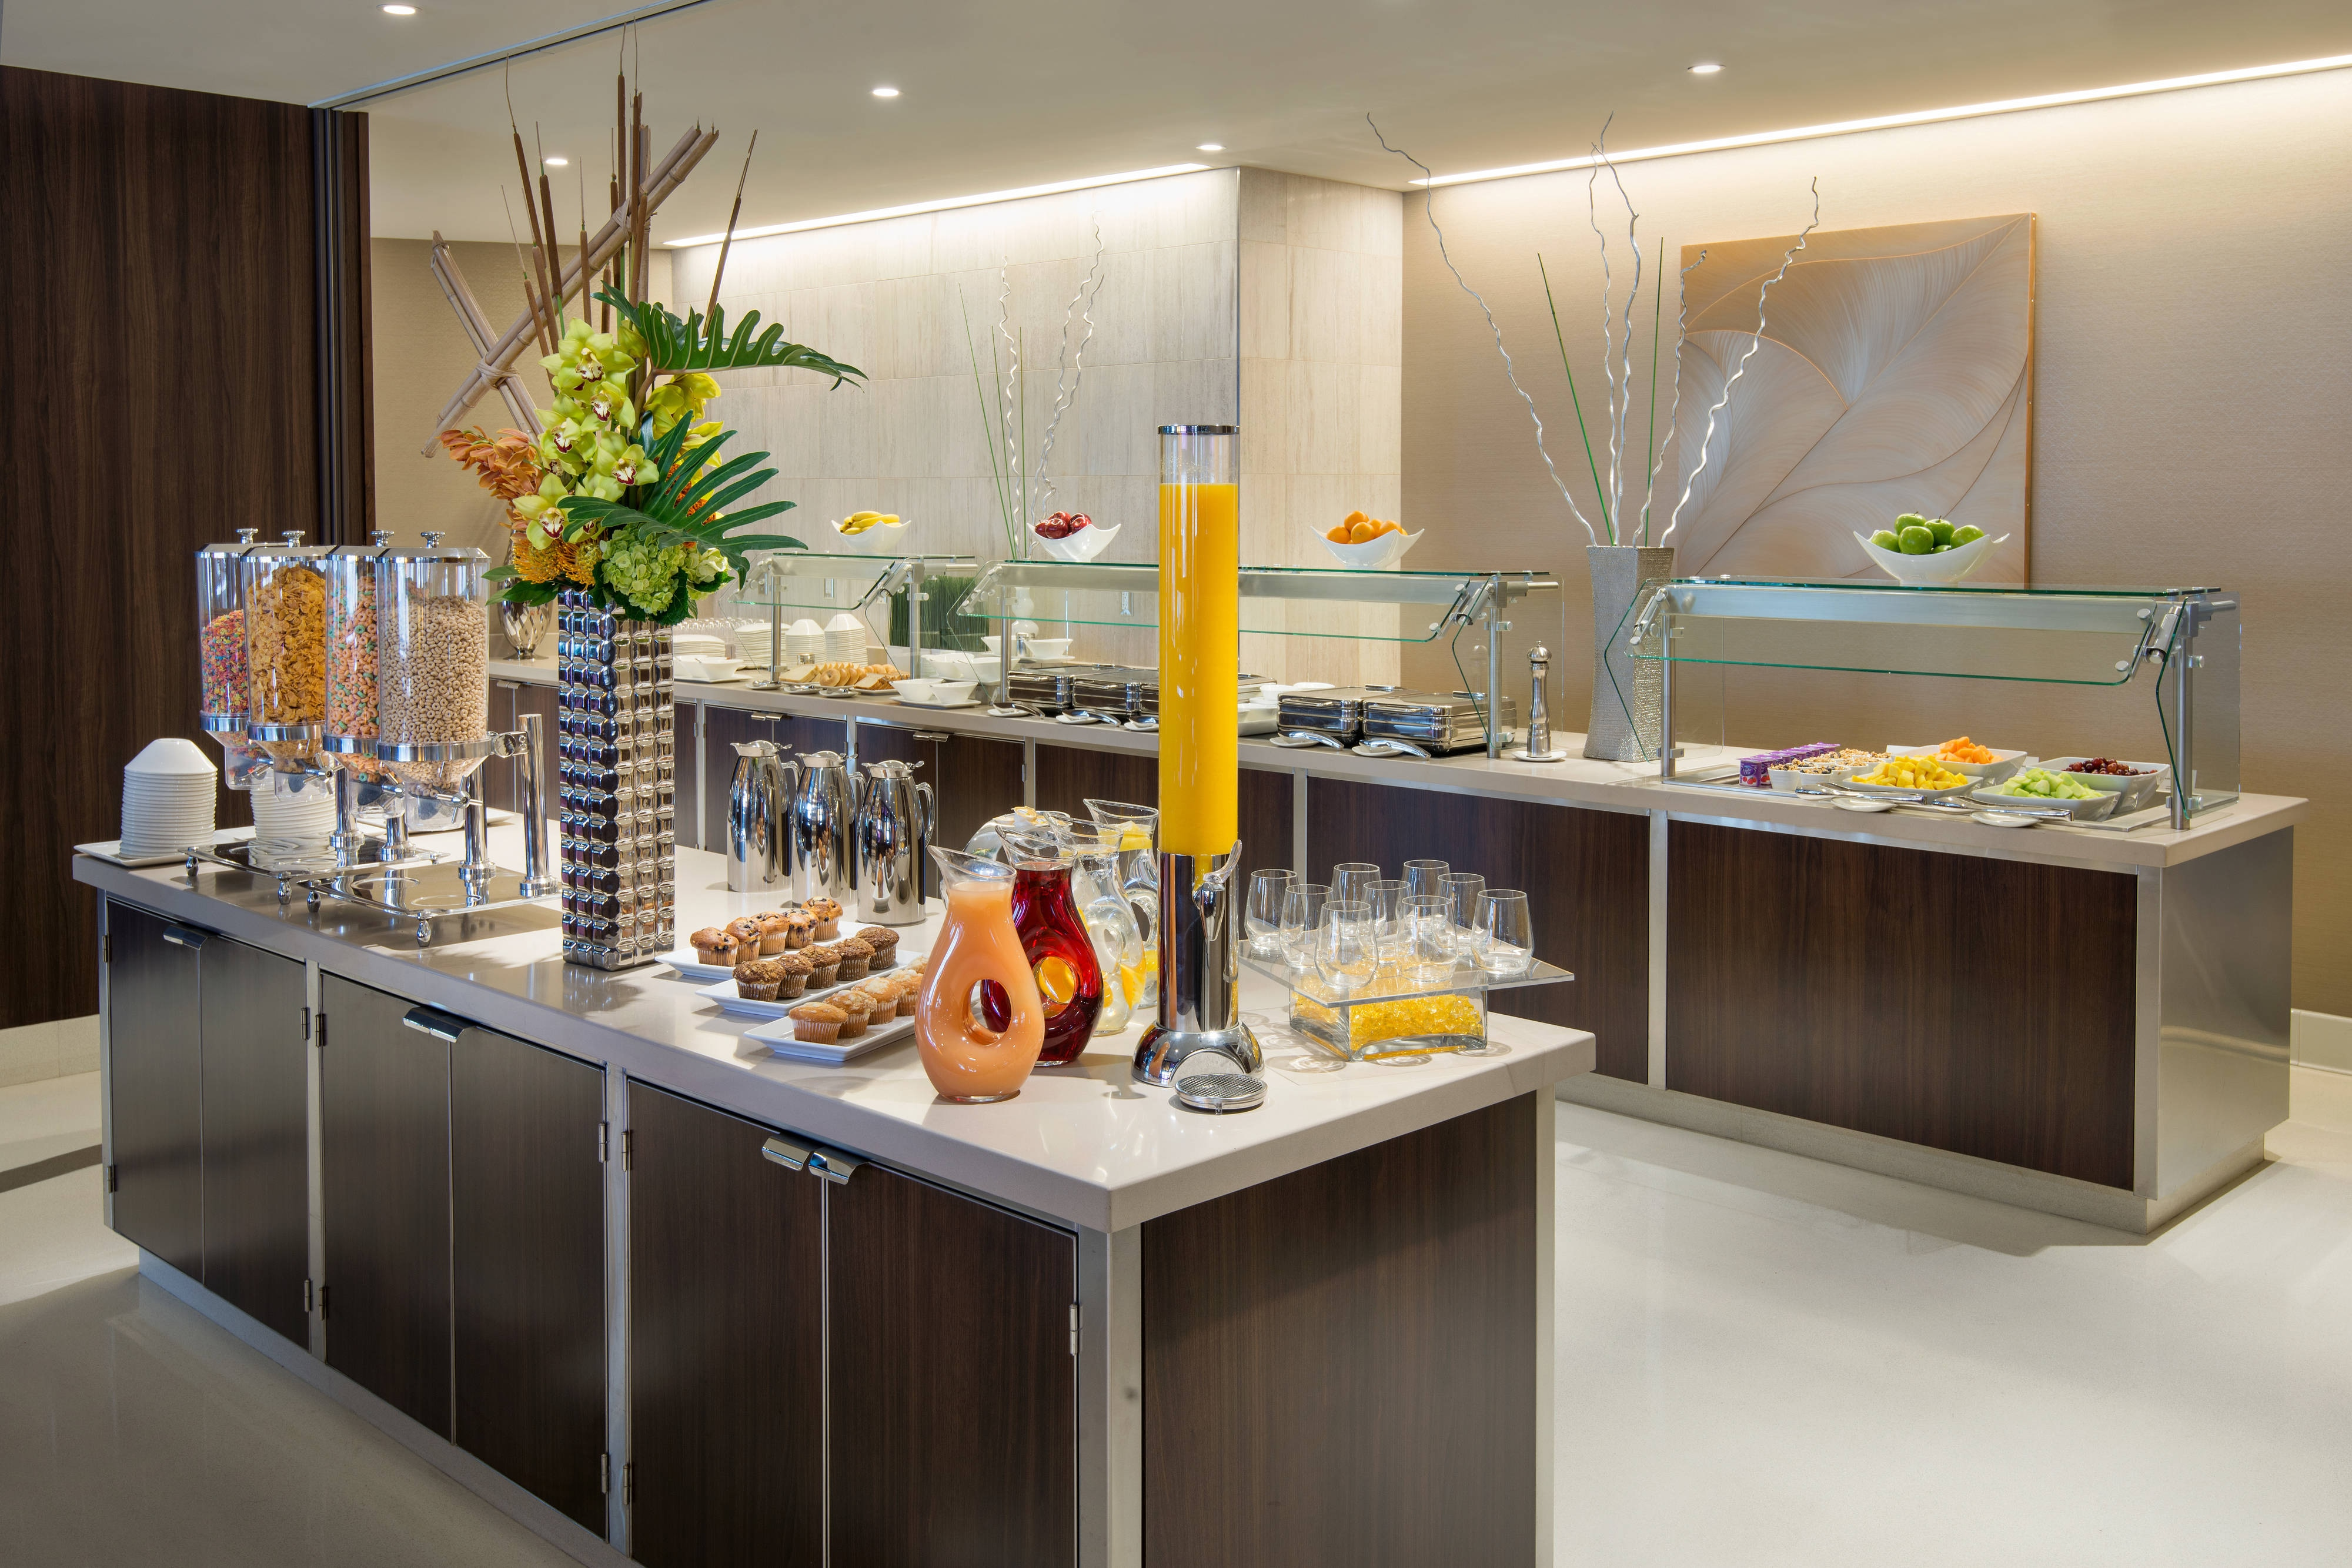 Residence Inn L.A. LIVE - Breakfast Buffet